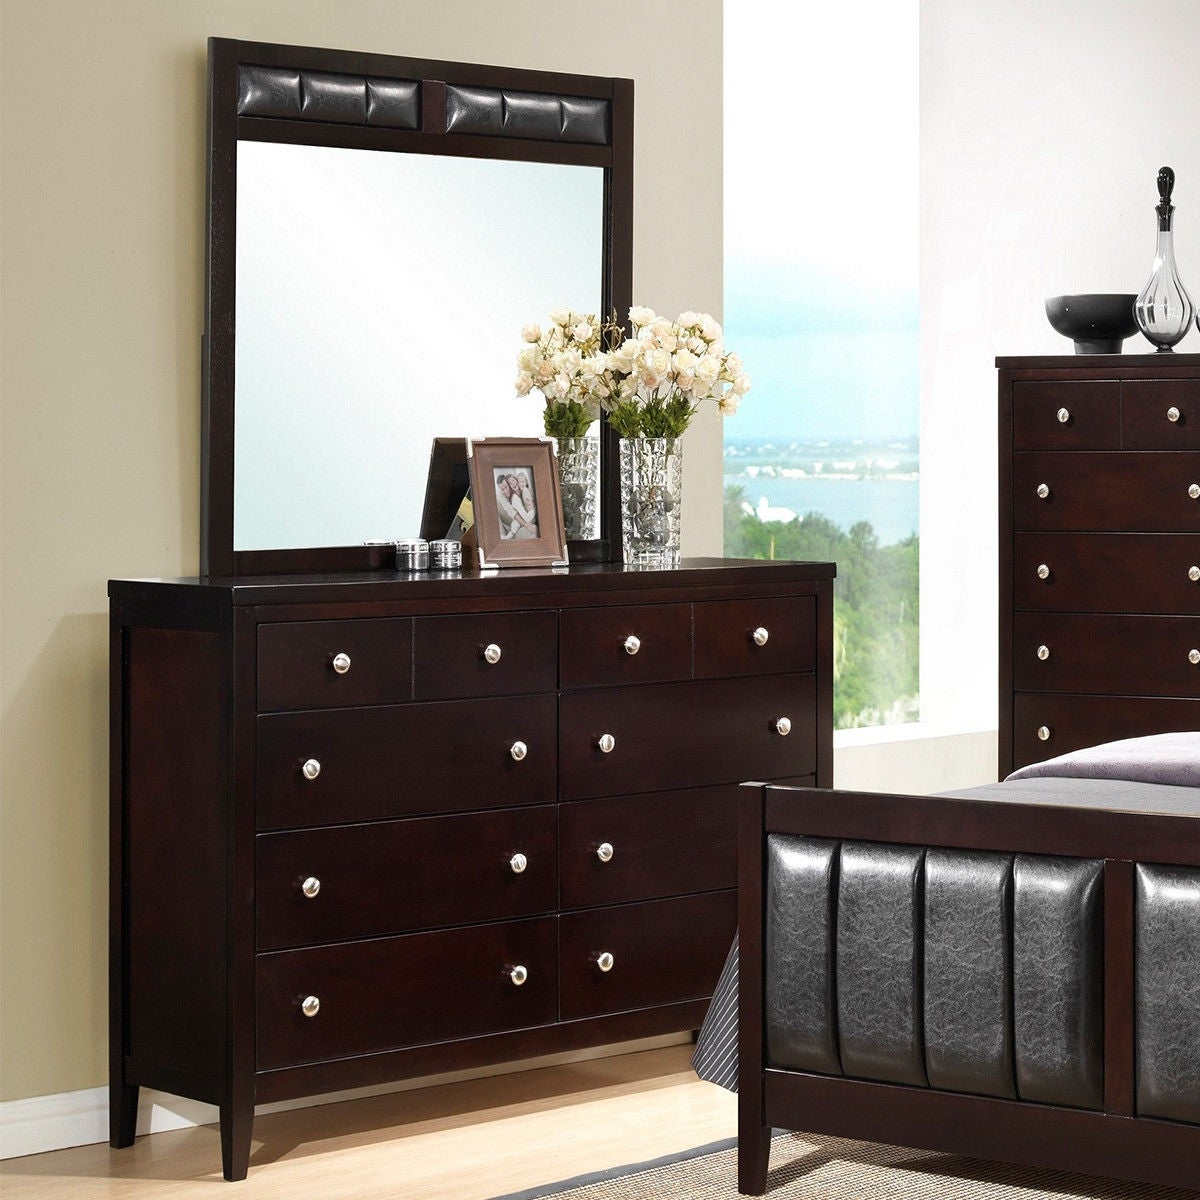 Shop costway 10 drawers dresser mirror set chest cabinet luxury home furniture storage black free shipping today overstock com 25745162